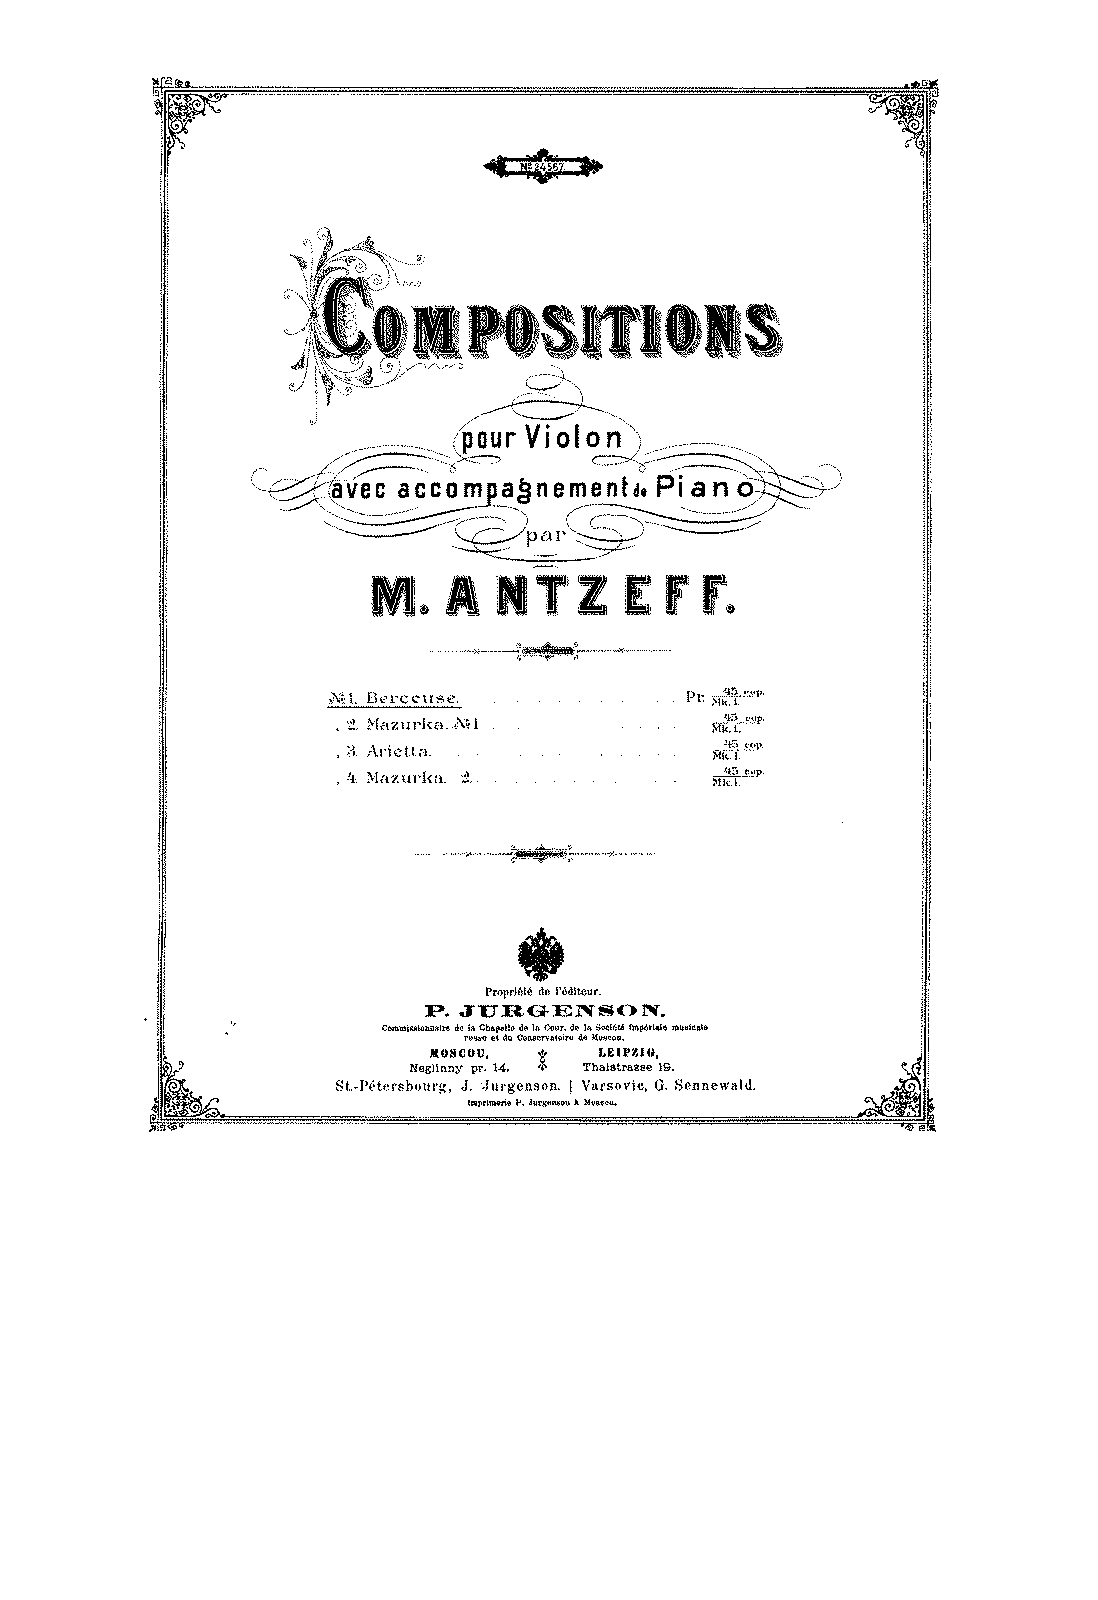 SIBLEY1802.10815.1024-39087004900884compositions 1.pdf